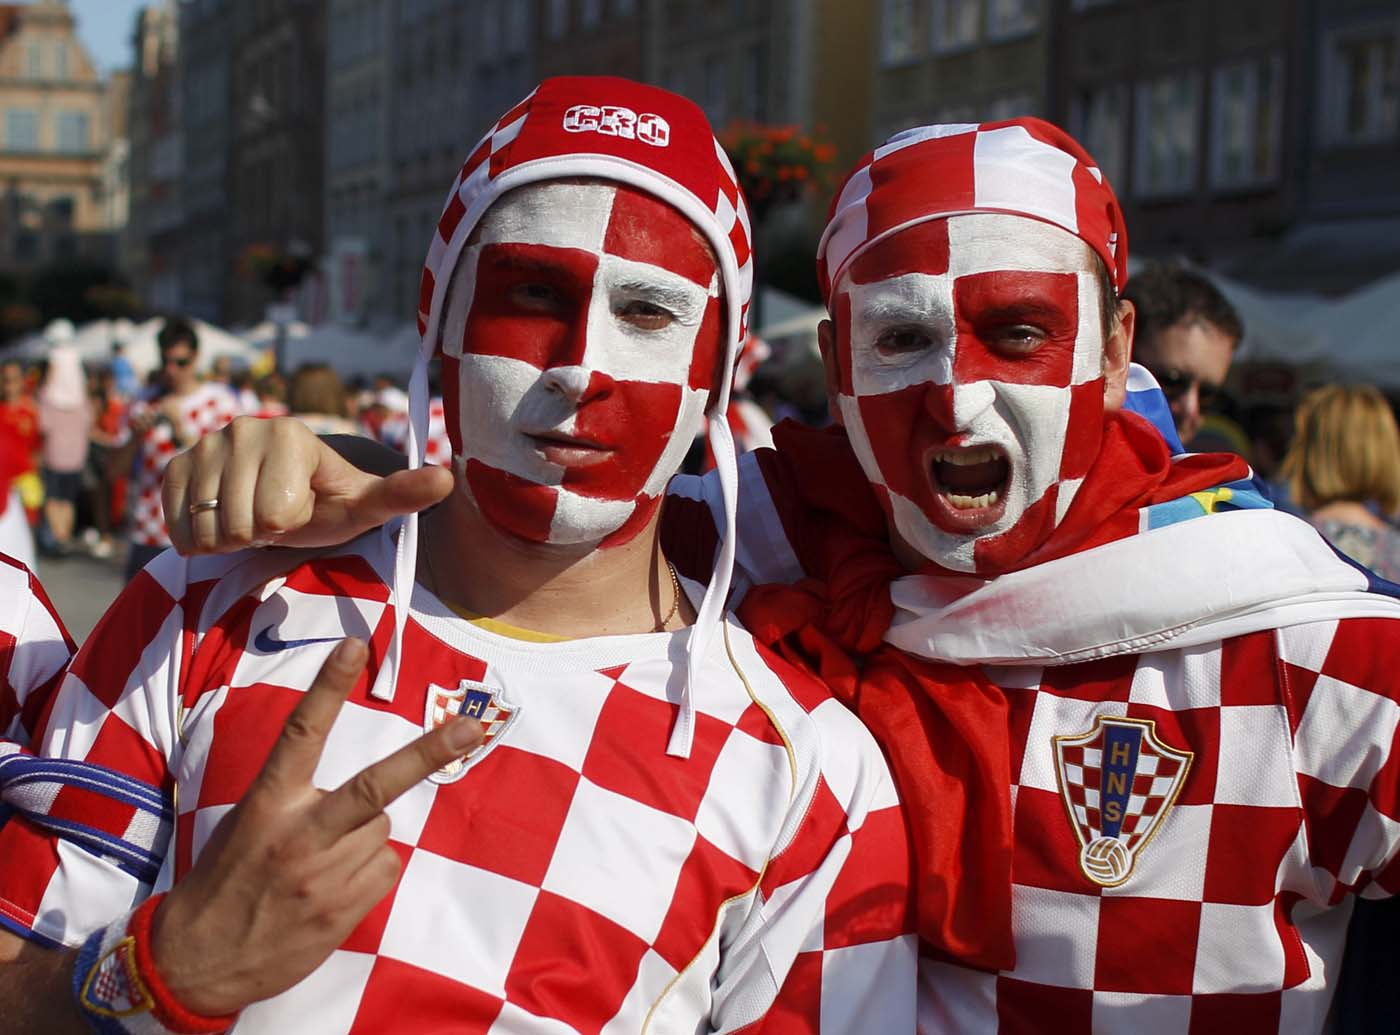 Croatian fans cheer celebrations before Euro 2012 soccer match against Spain in the Old Town of Gdansk